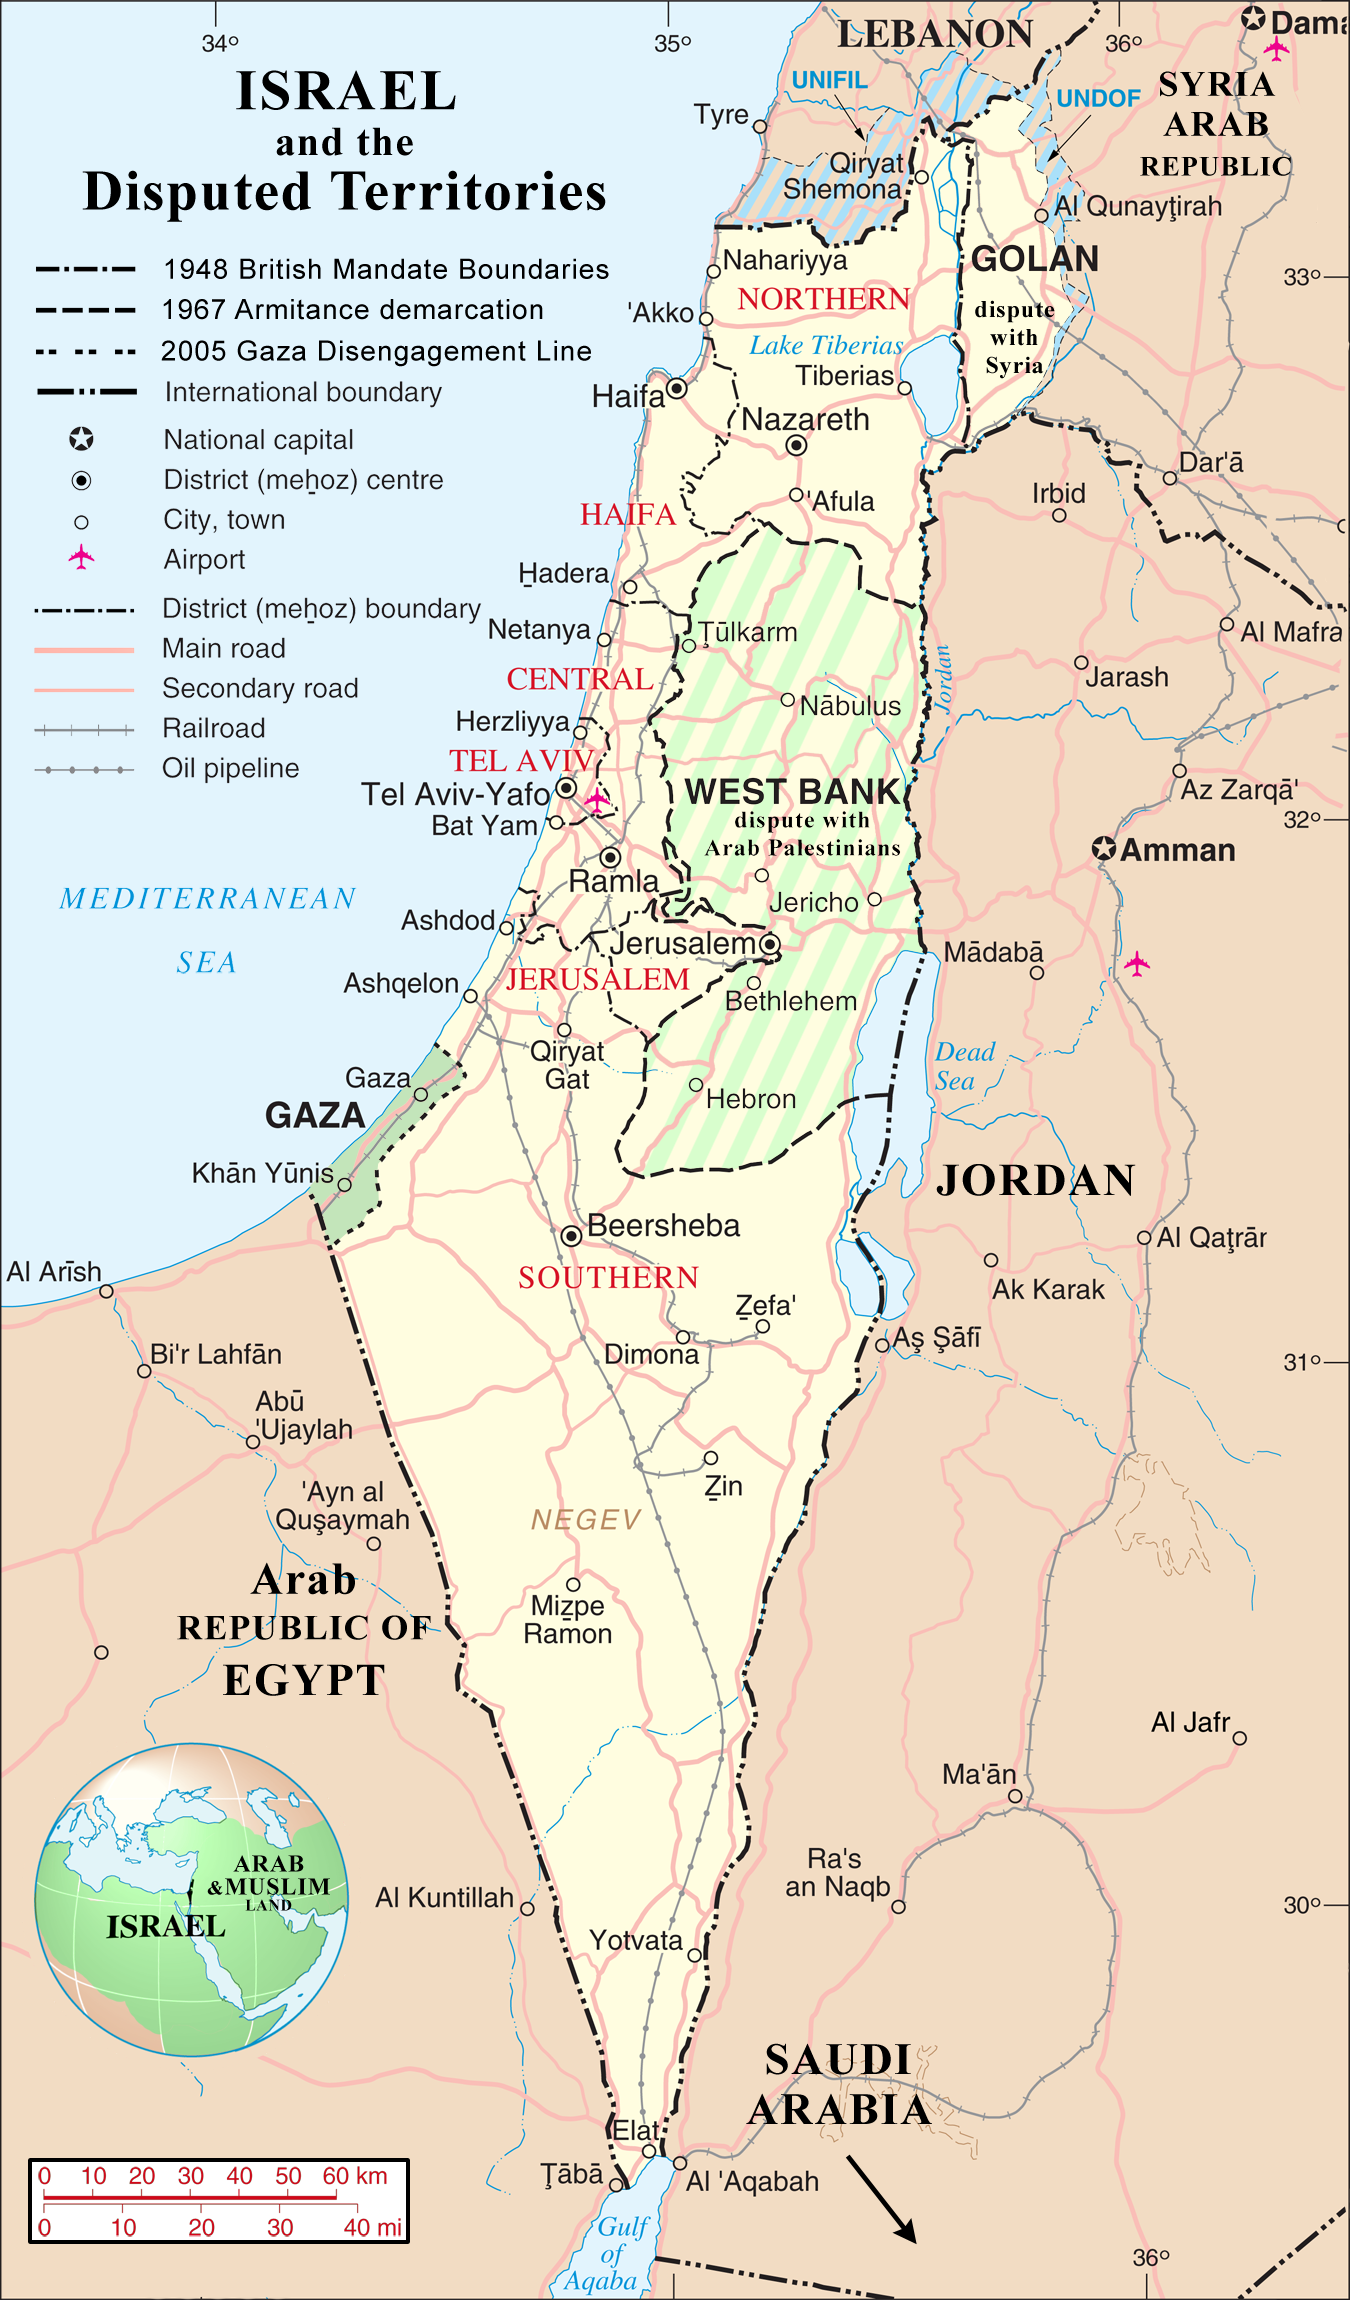 Atlas of israel wikimedia commons israel and the disputed territories mapg gumiabroncs Image collections